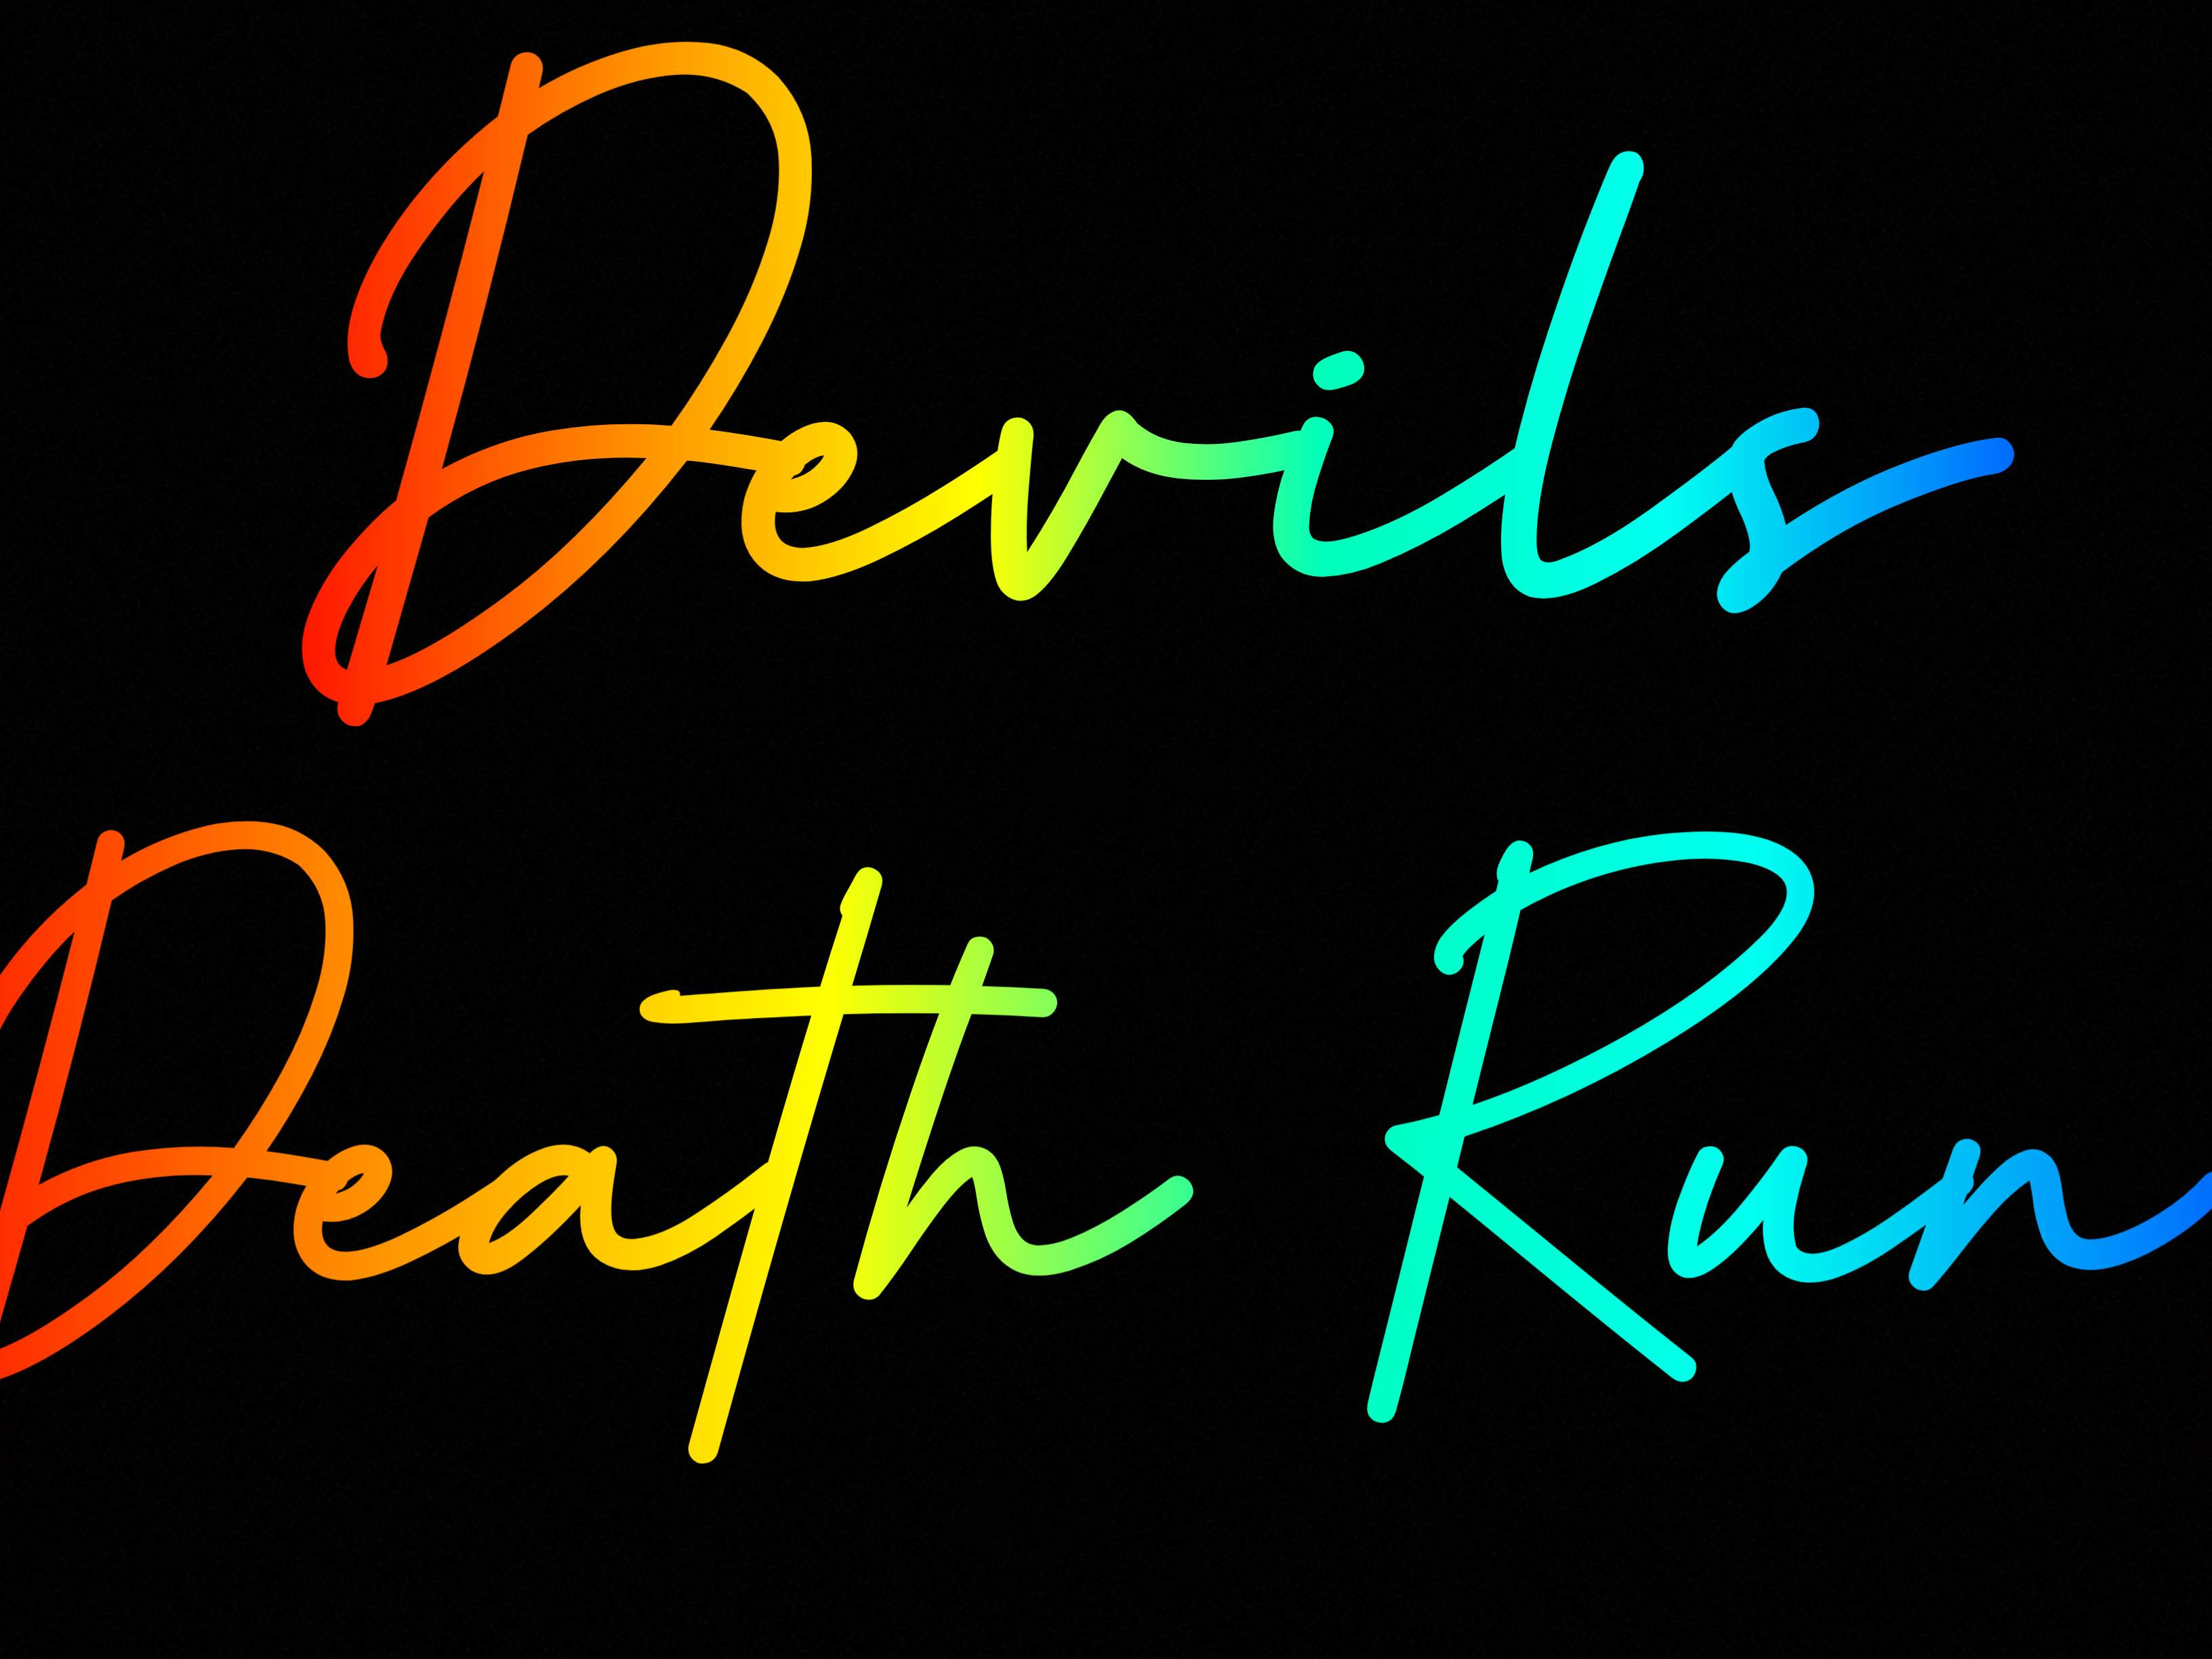 DEVILS DEATH RUN